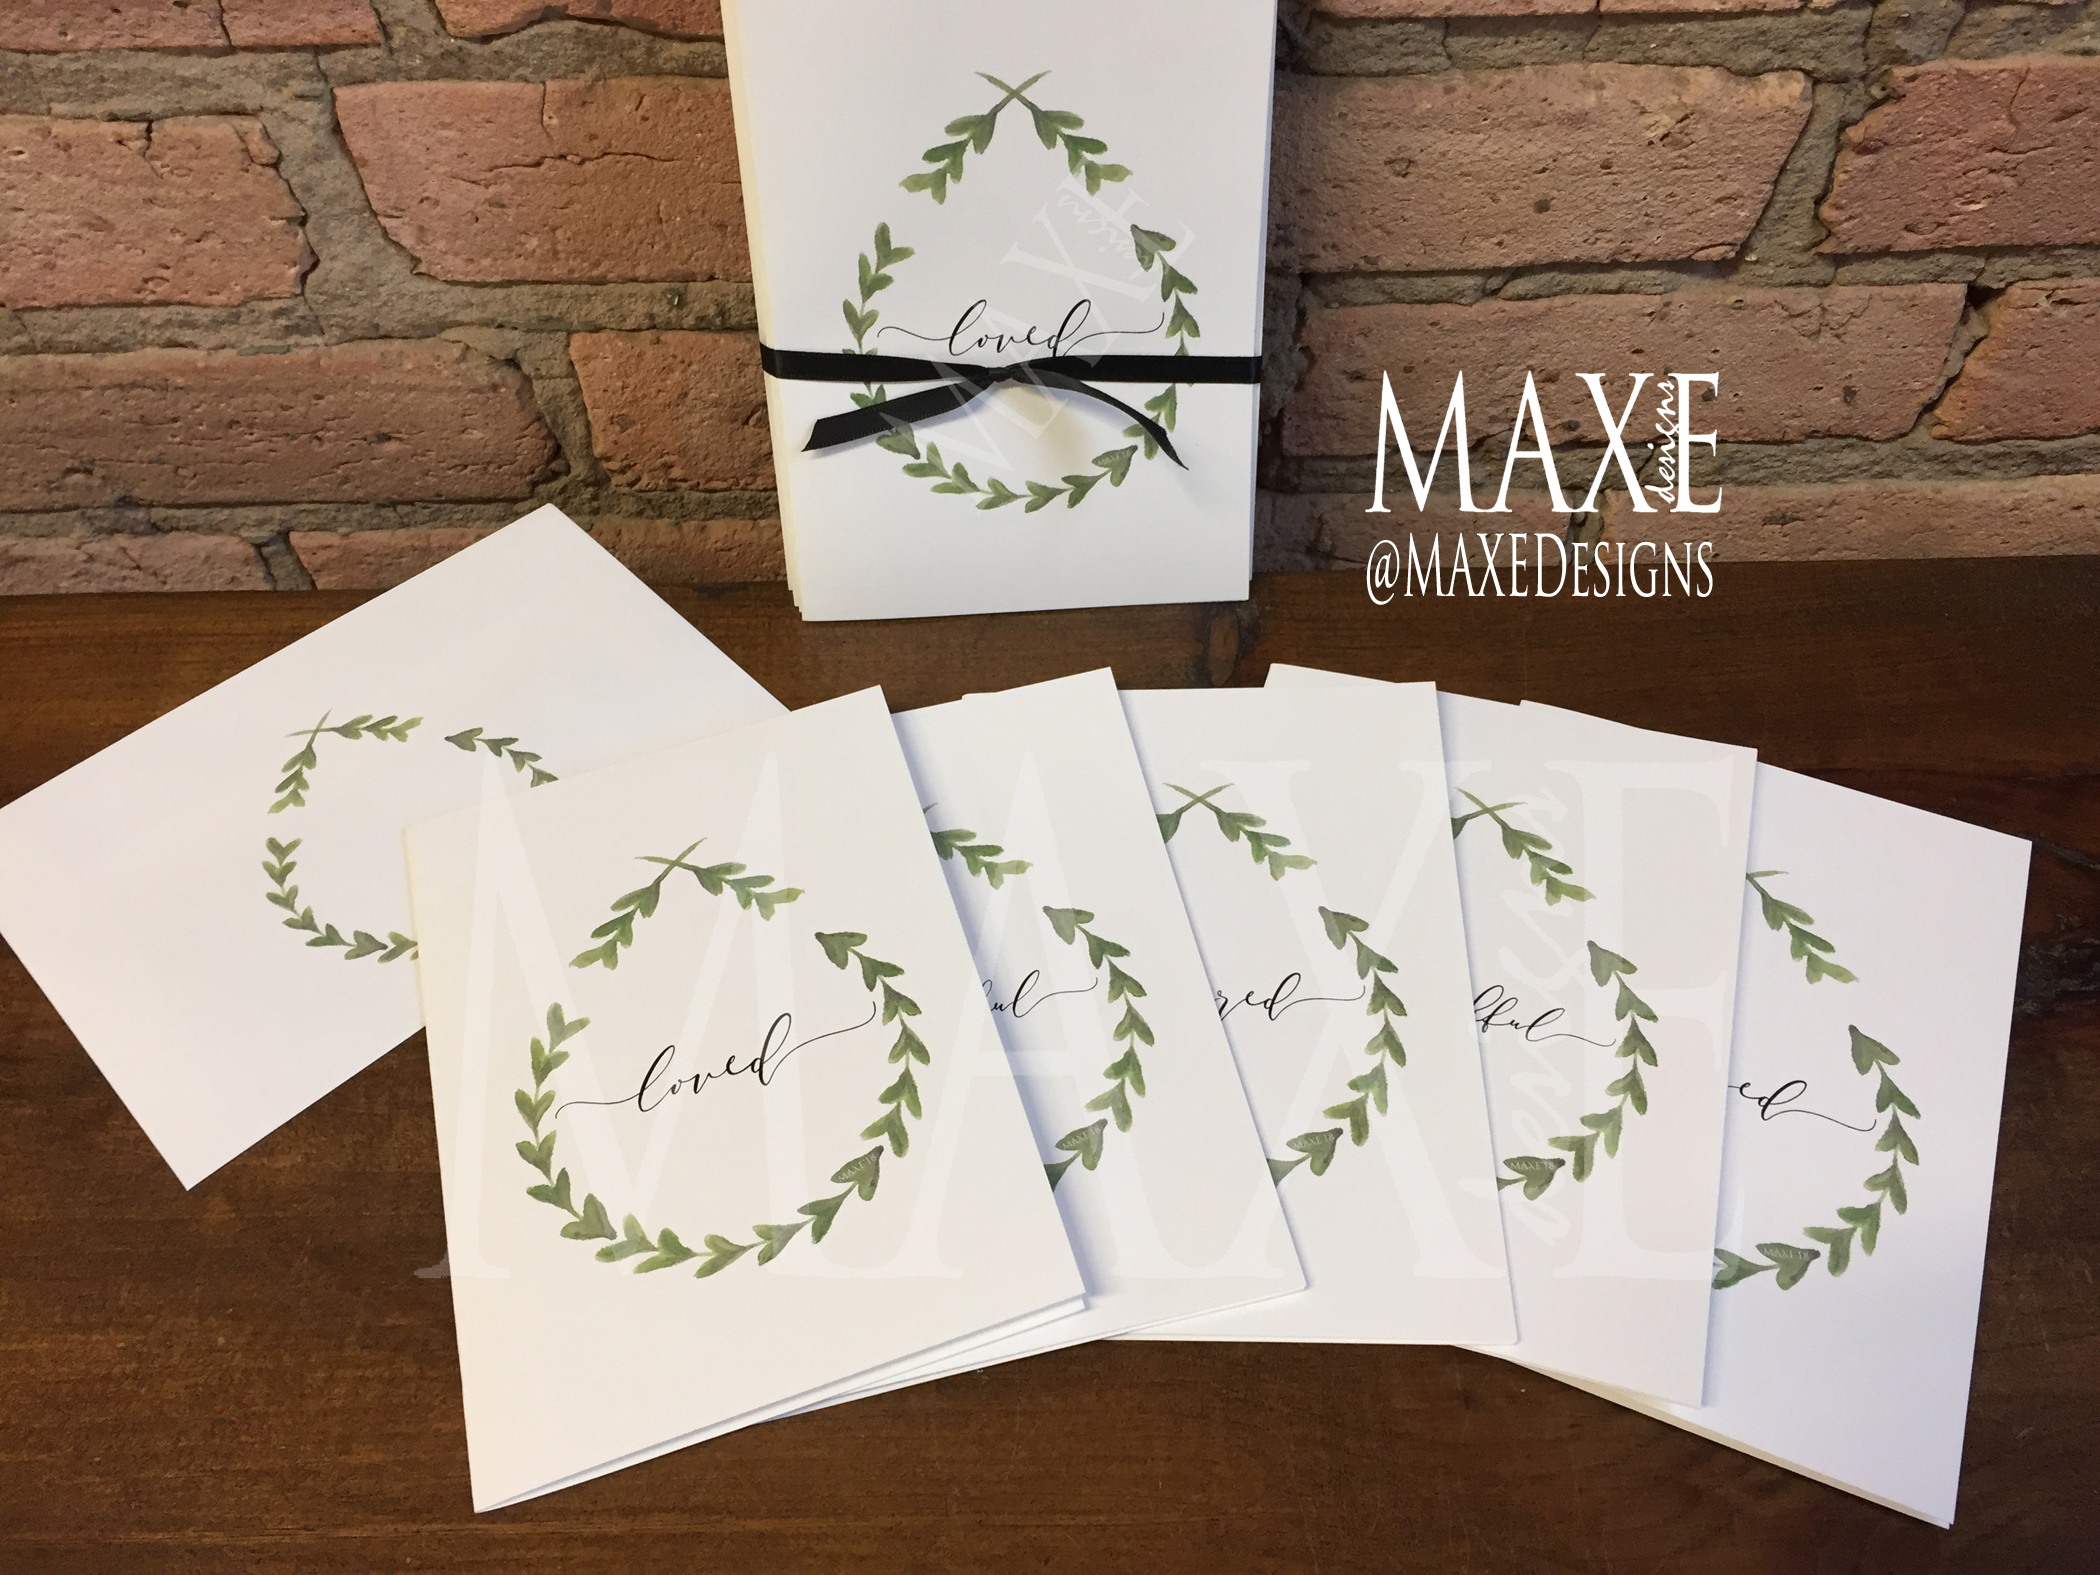 Wreaths of Gratitude - MAXE Designs 2018 copy.jpg